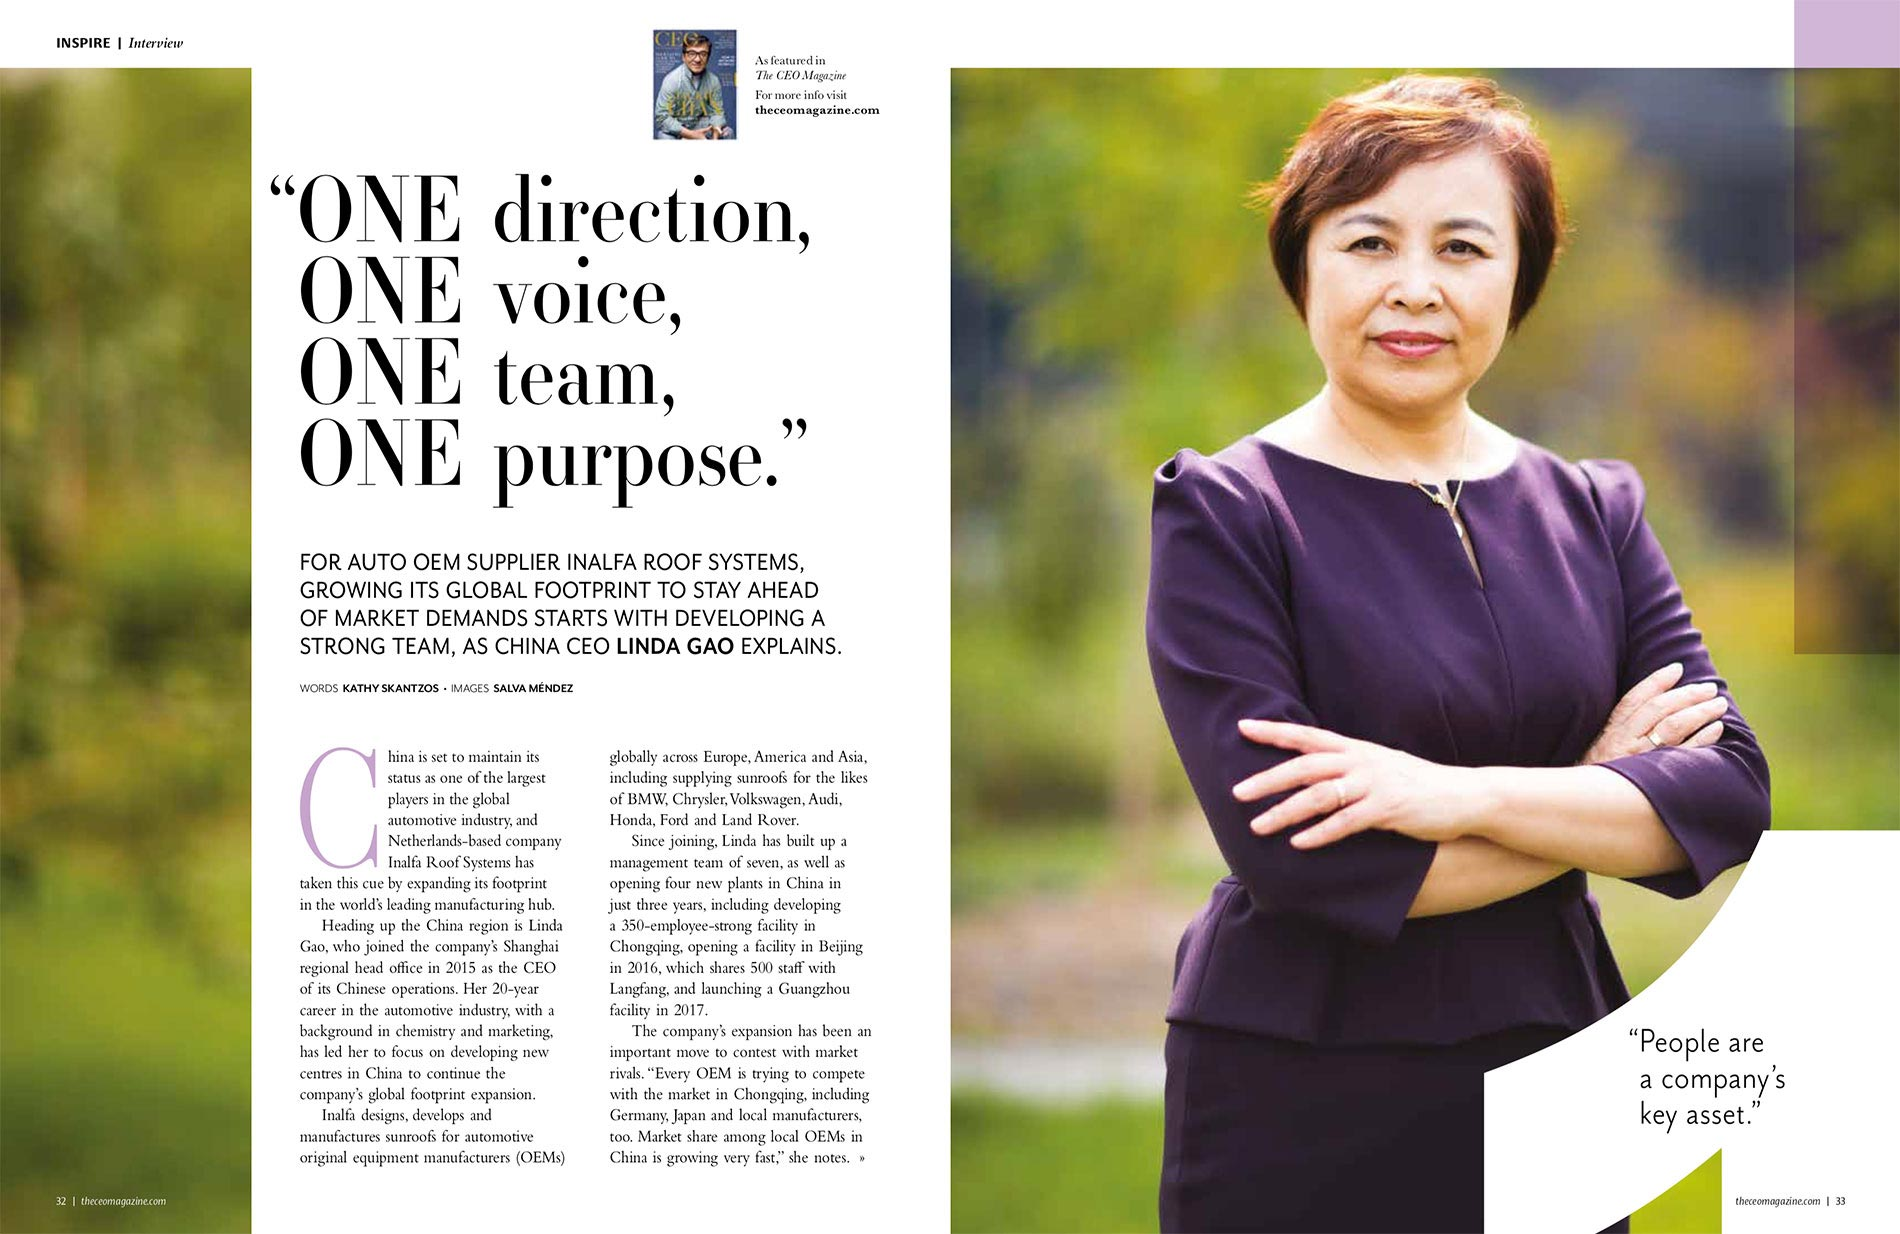 Ms. Linda Gao CEO of INALFA ROOF SYSTEMS.